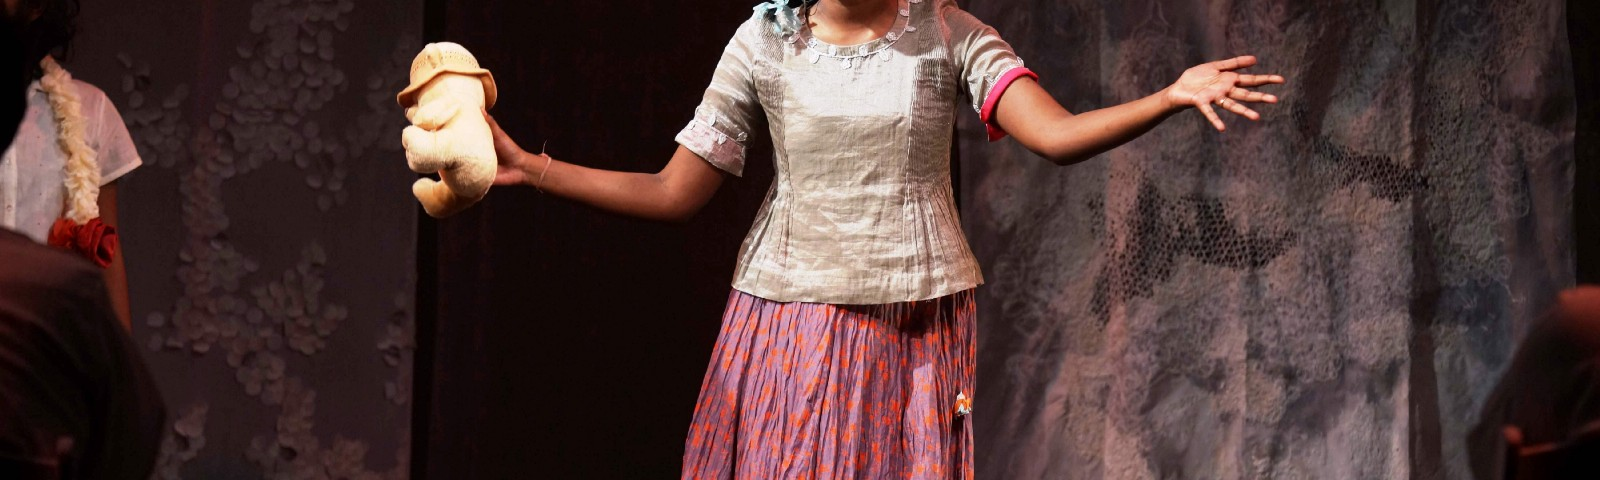 When girls from Mumbai's red-light area took the stage at